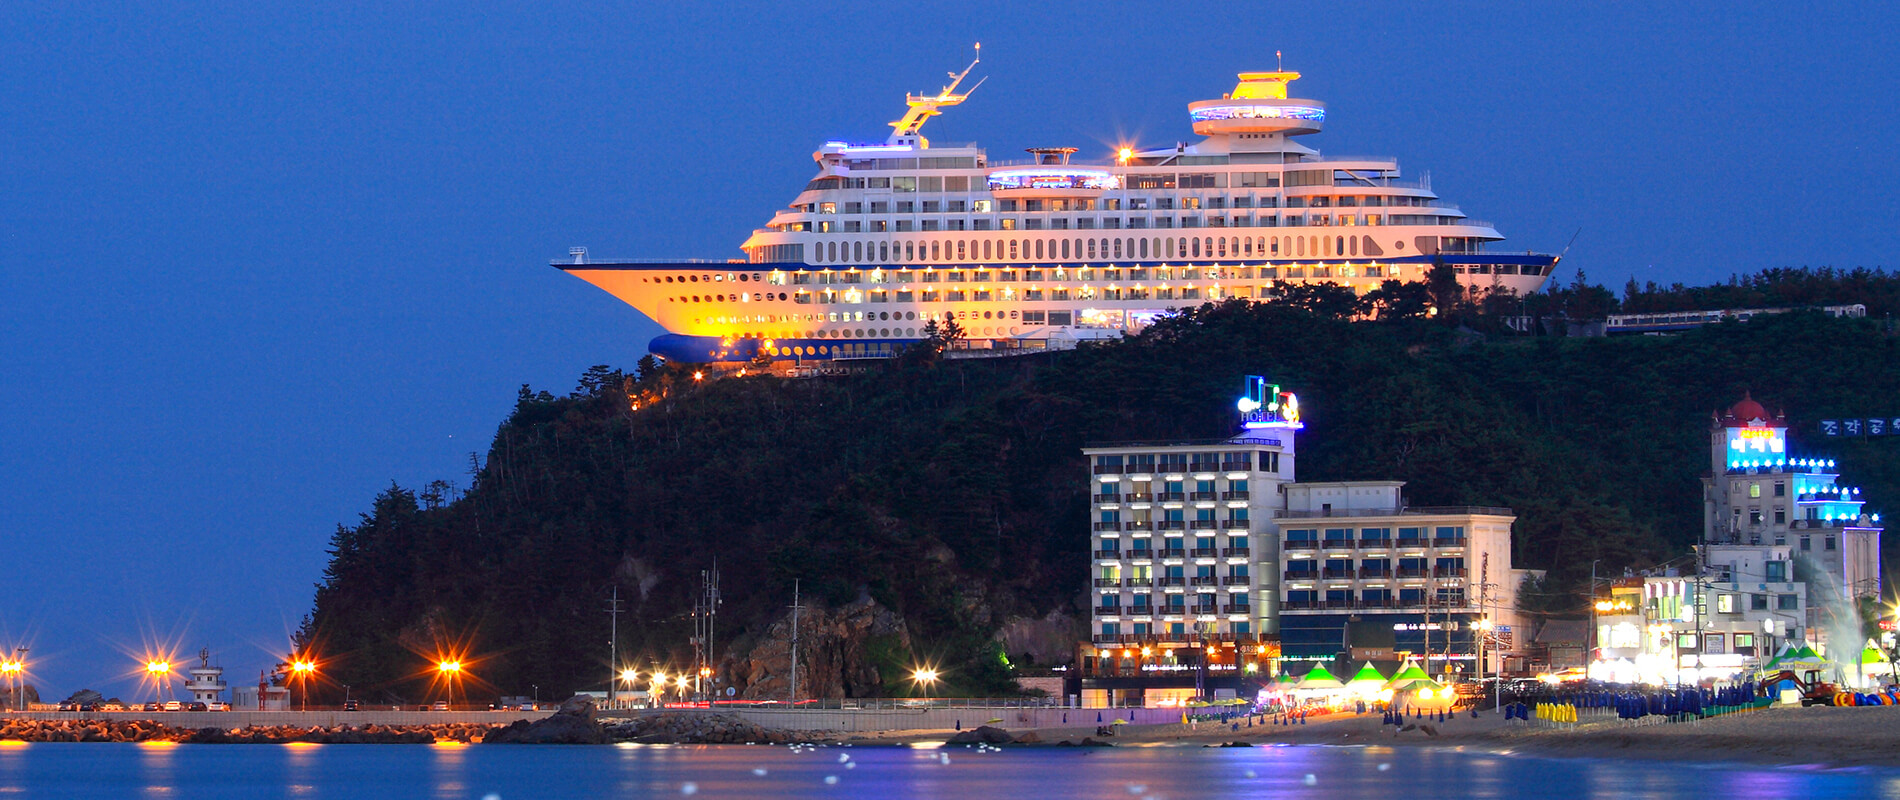 Sun Cruise Resort, A Cruise Ship on Top of a Hill